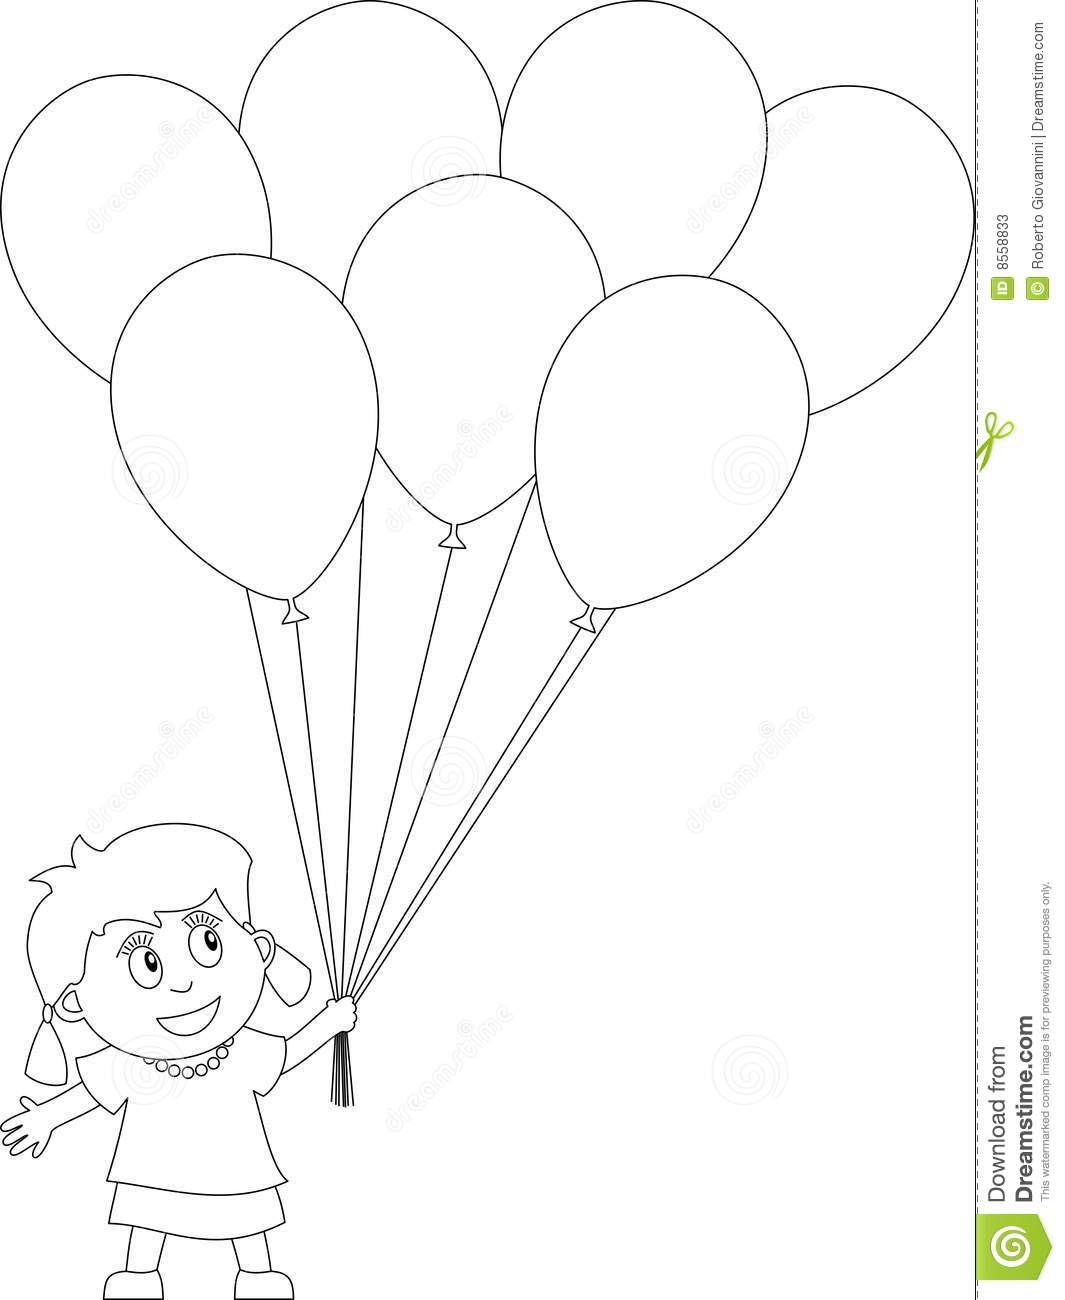 Free Coloring Pages Of Bunch Of Balloons